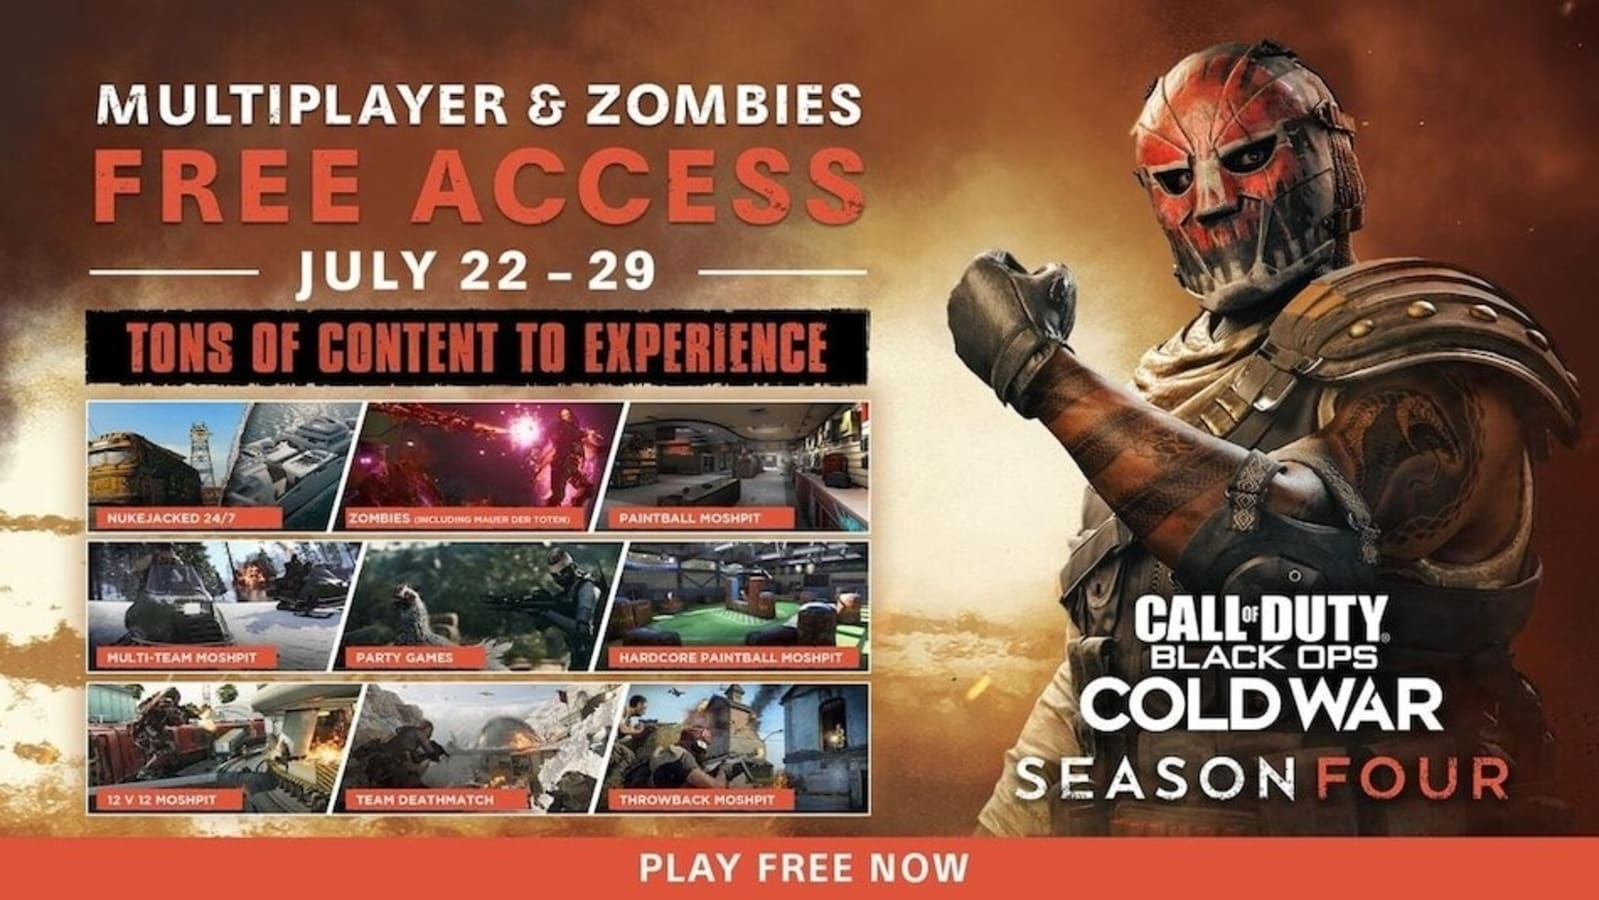 Call of Duty: Black Ops Cold War is a free way to test the multiplayer Zombies for free